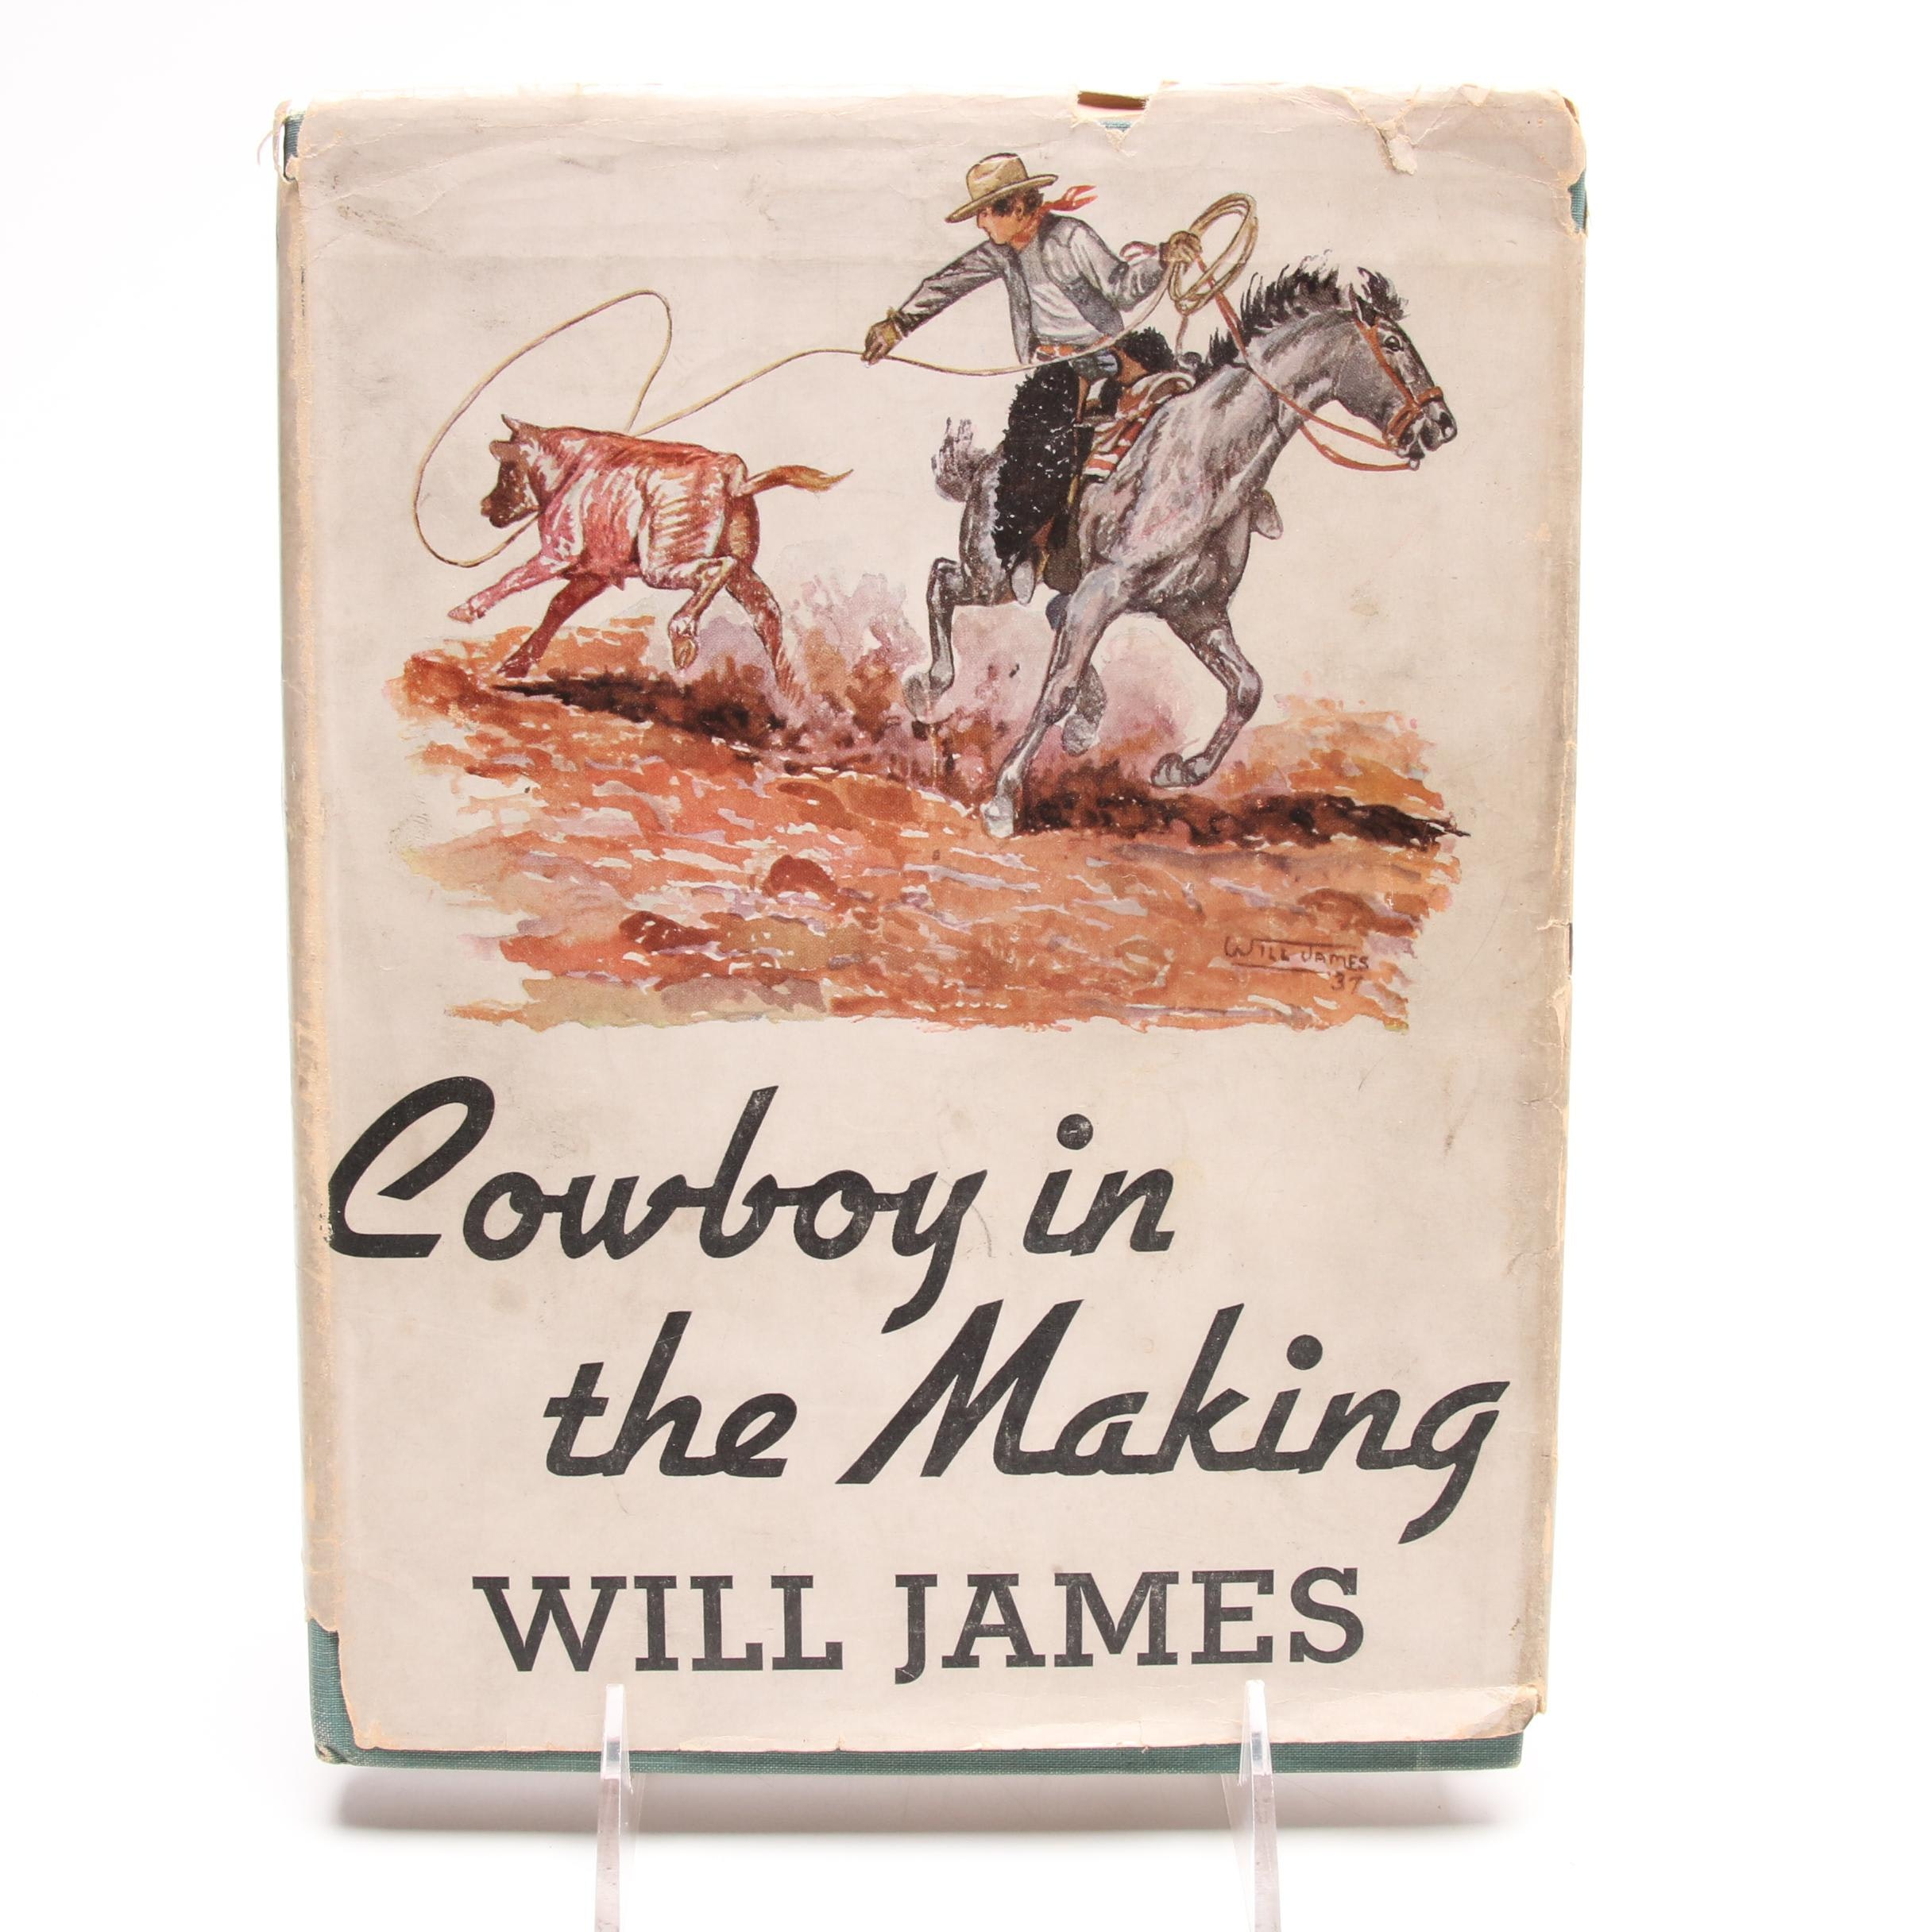 """Cowboy in the Making"" by Will James, First Edition"